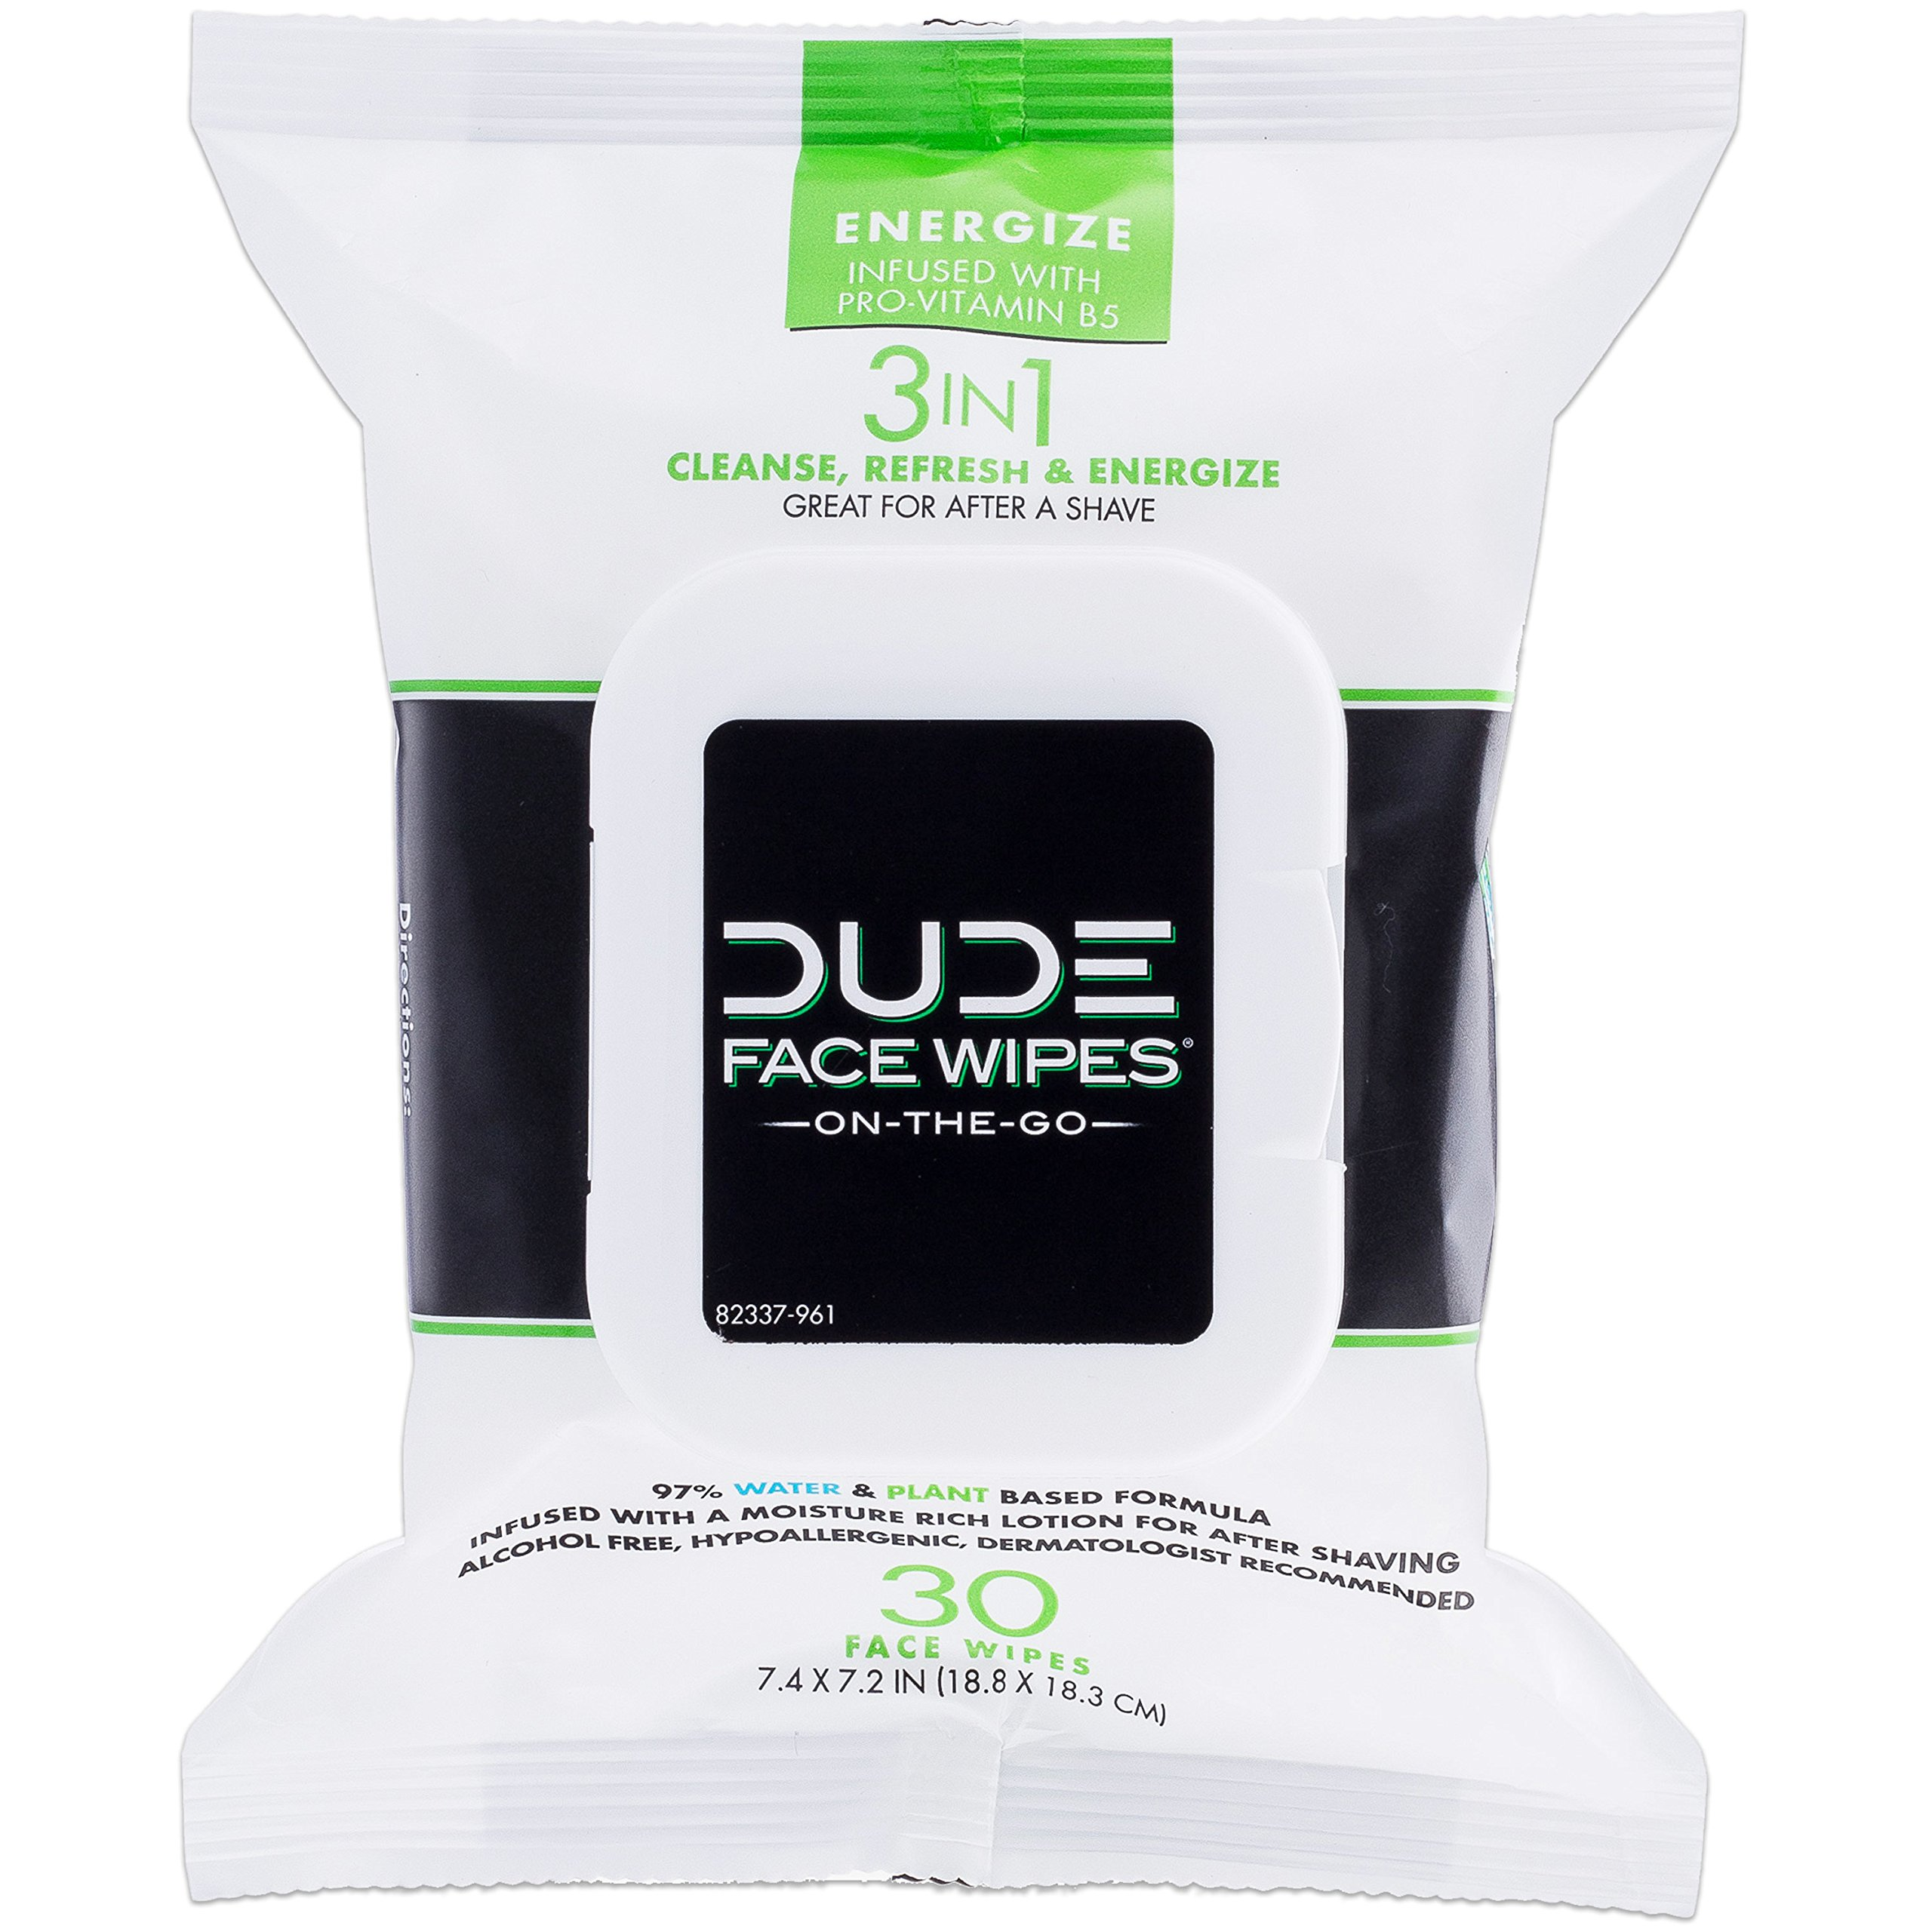 DUDE Face Wipes 30 Count, Energizing & Refreshing Scent, Infused with Pro Vitamin B-5